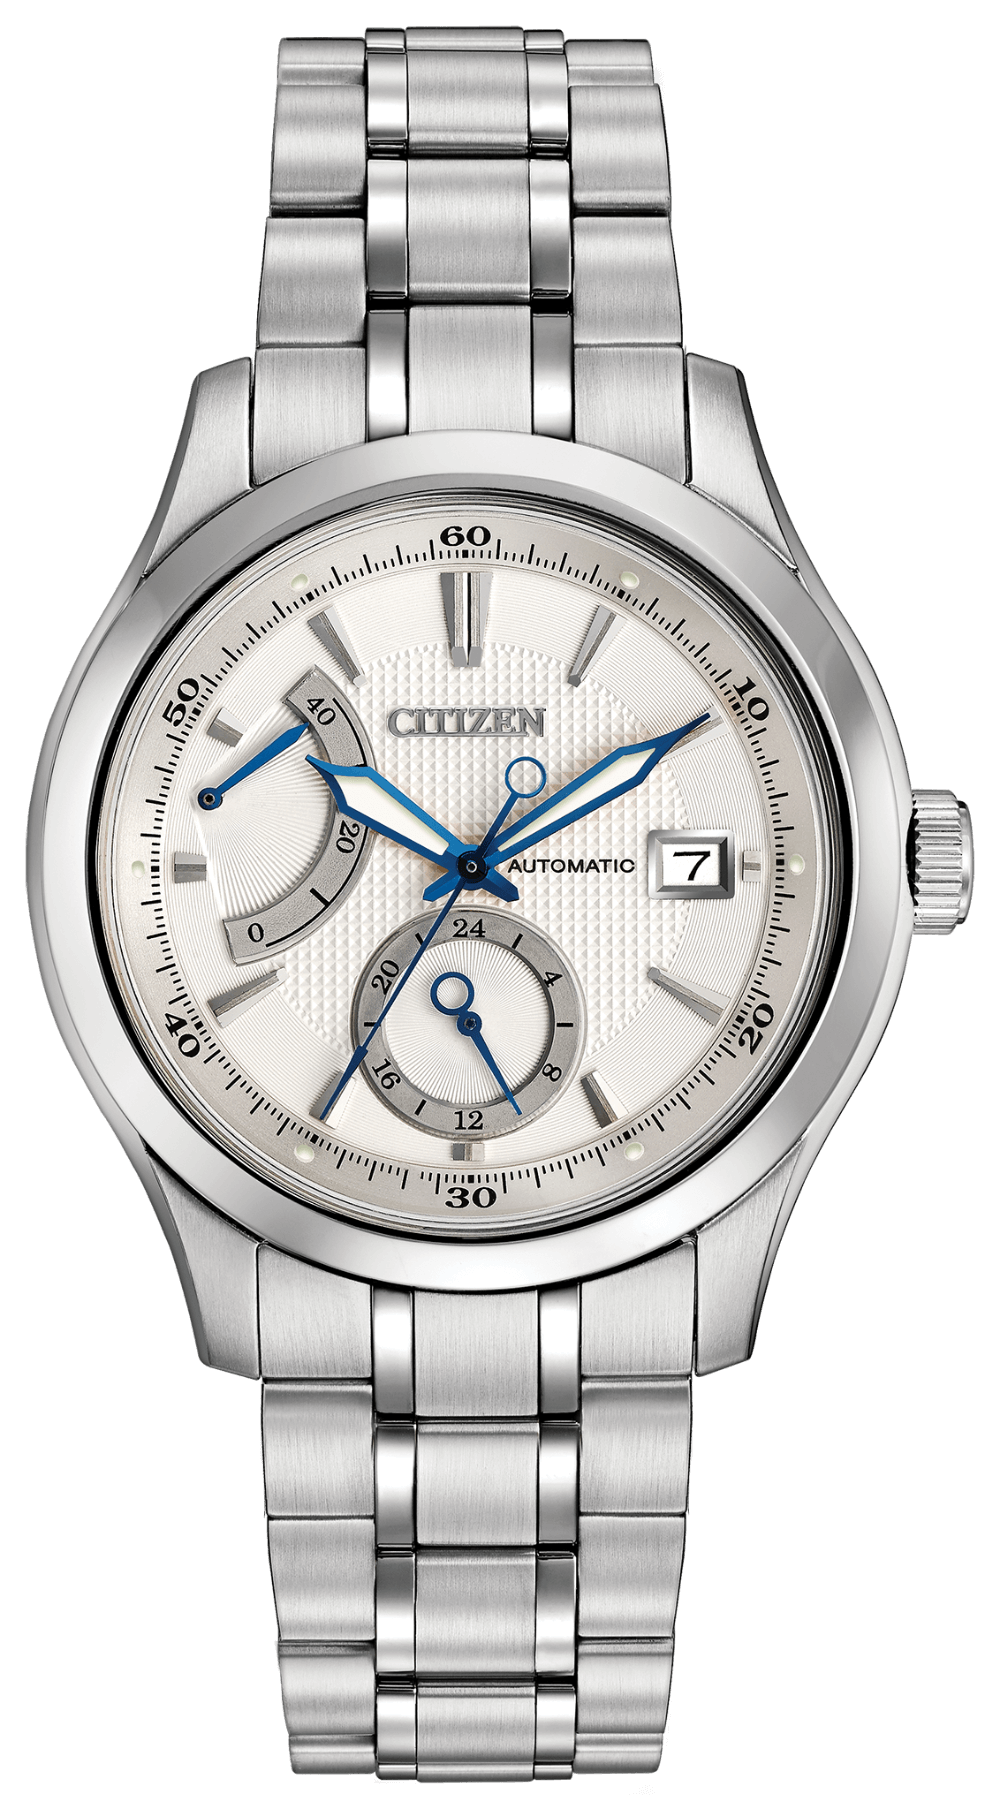 13. Citizen Signature Grand Classic NB3010-52A